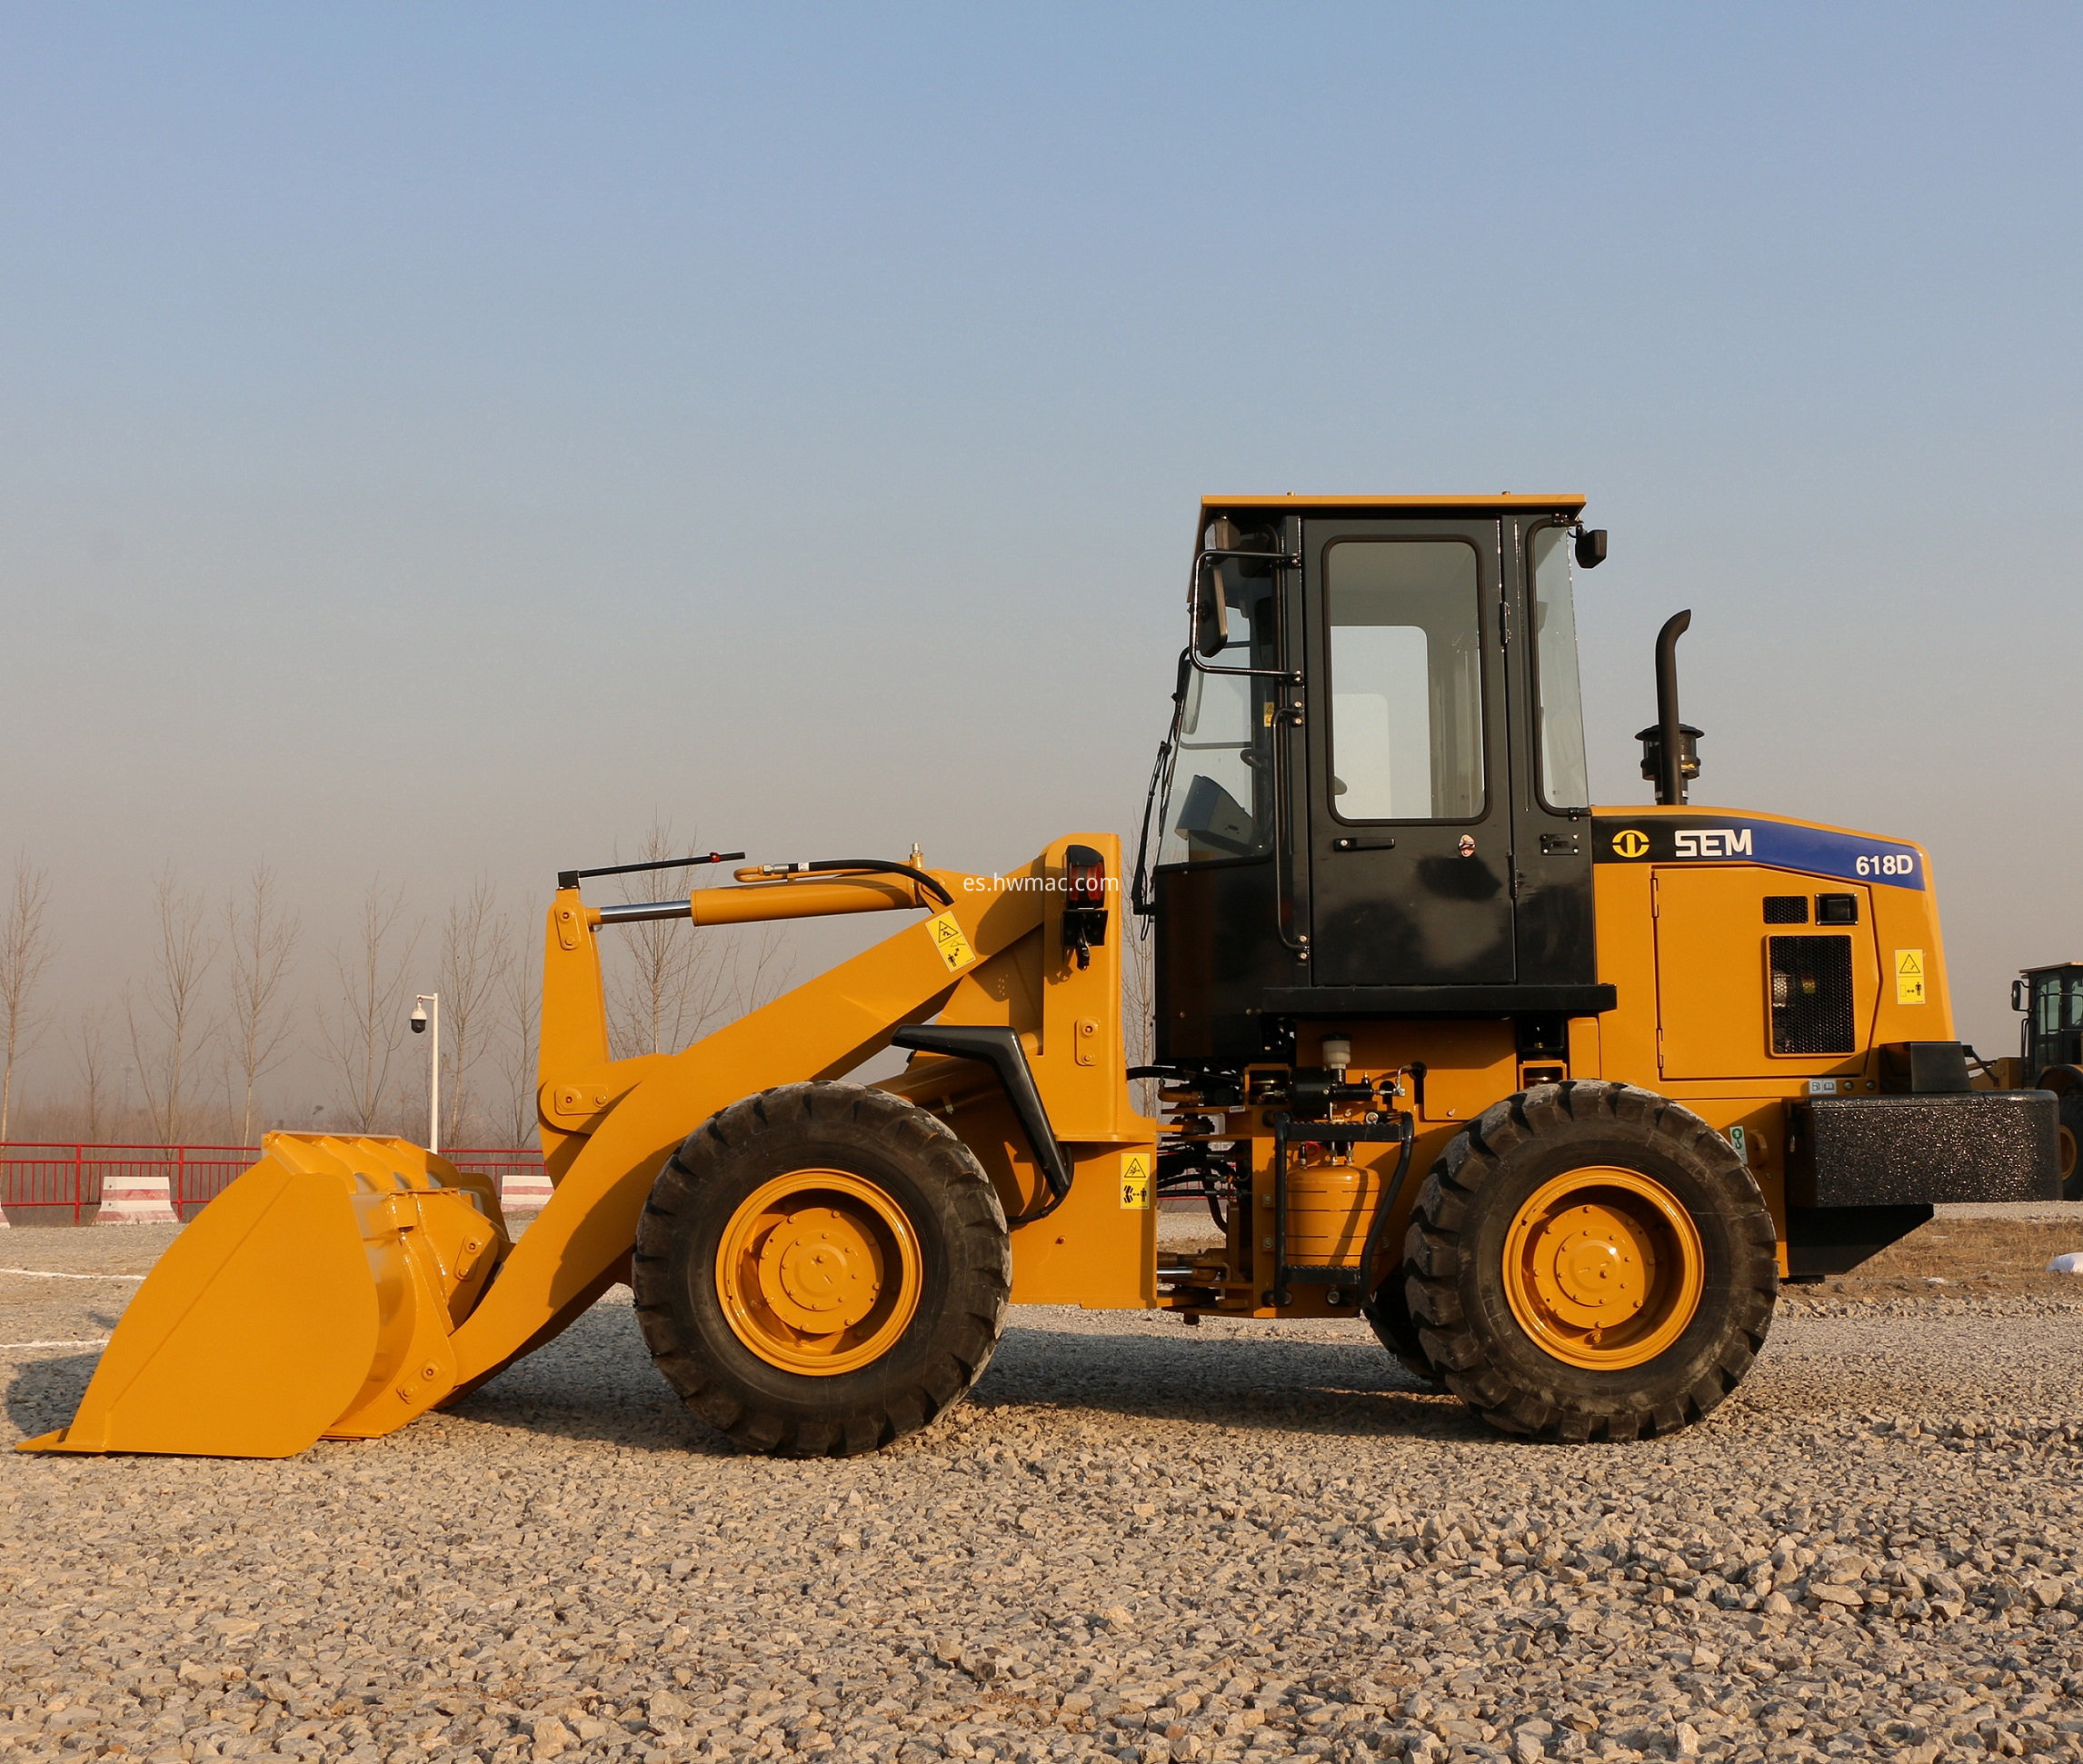 sem618d wheel loader